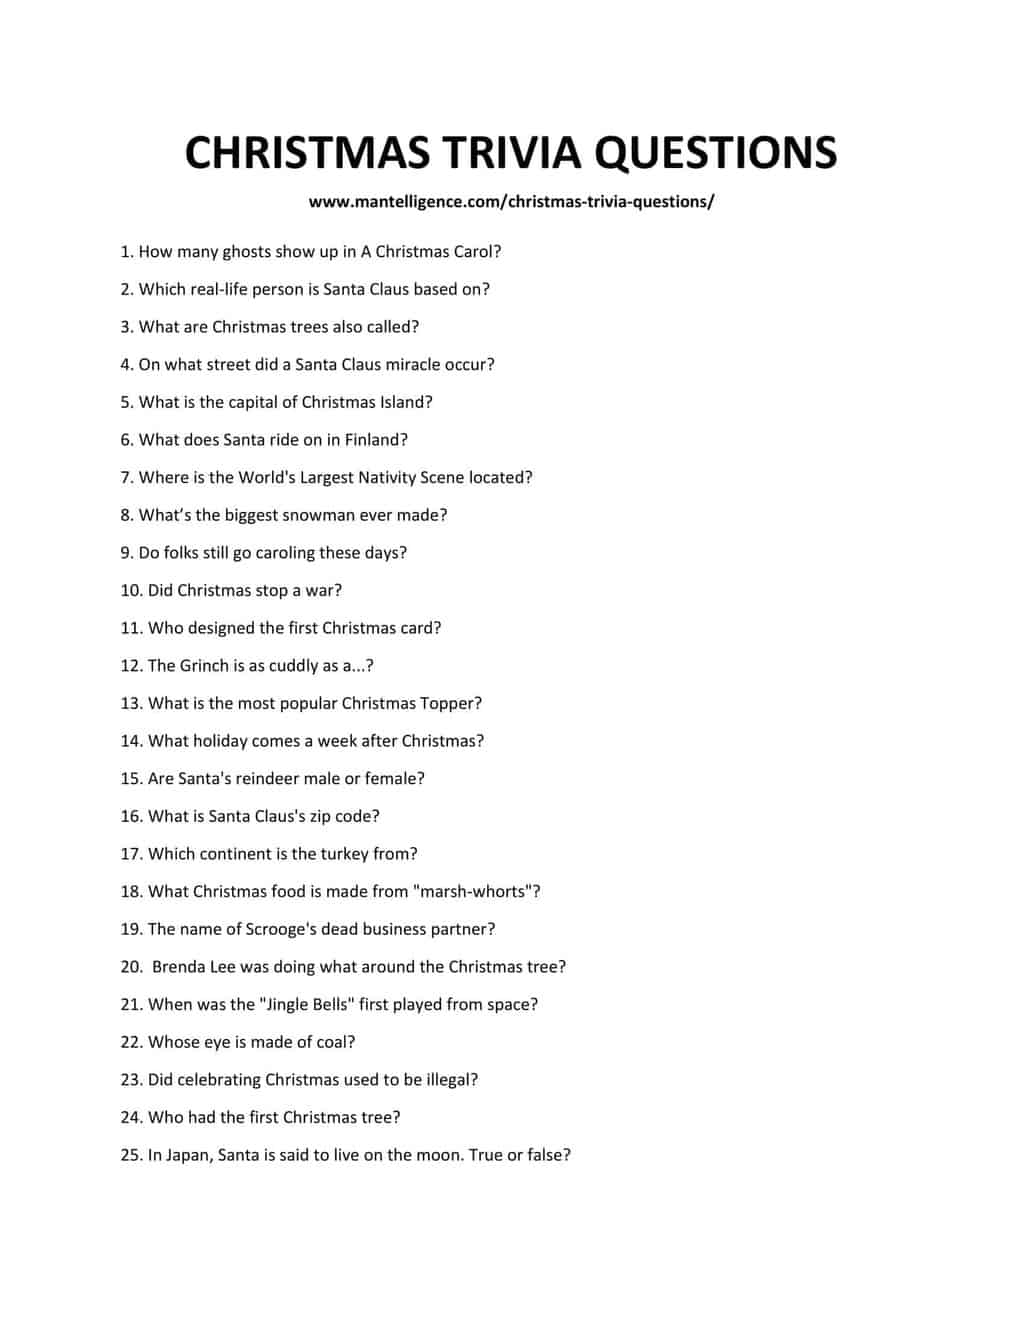 CHRISTMAS TRIVIA QUESTIONS-1 (1)